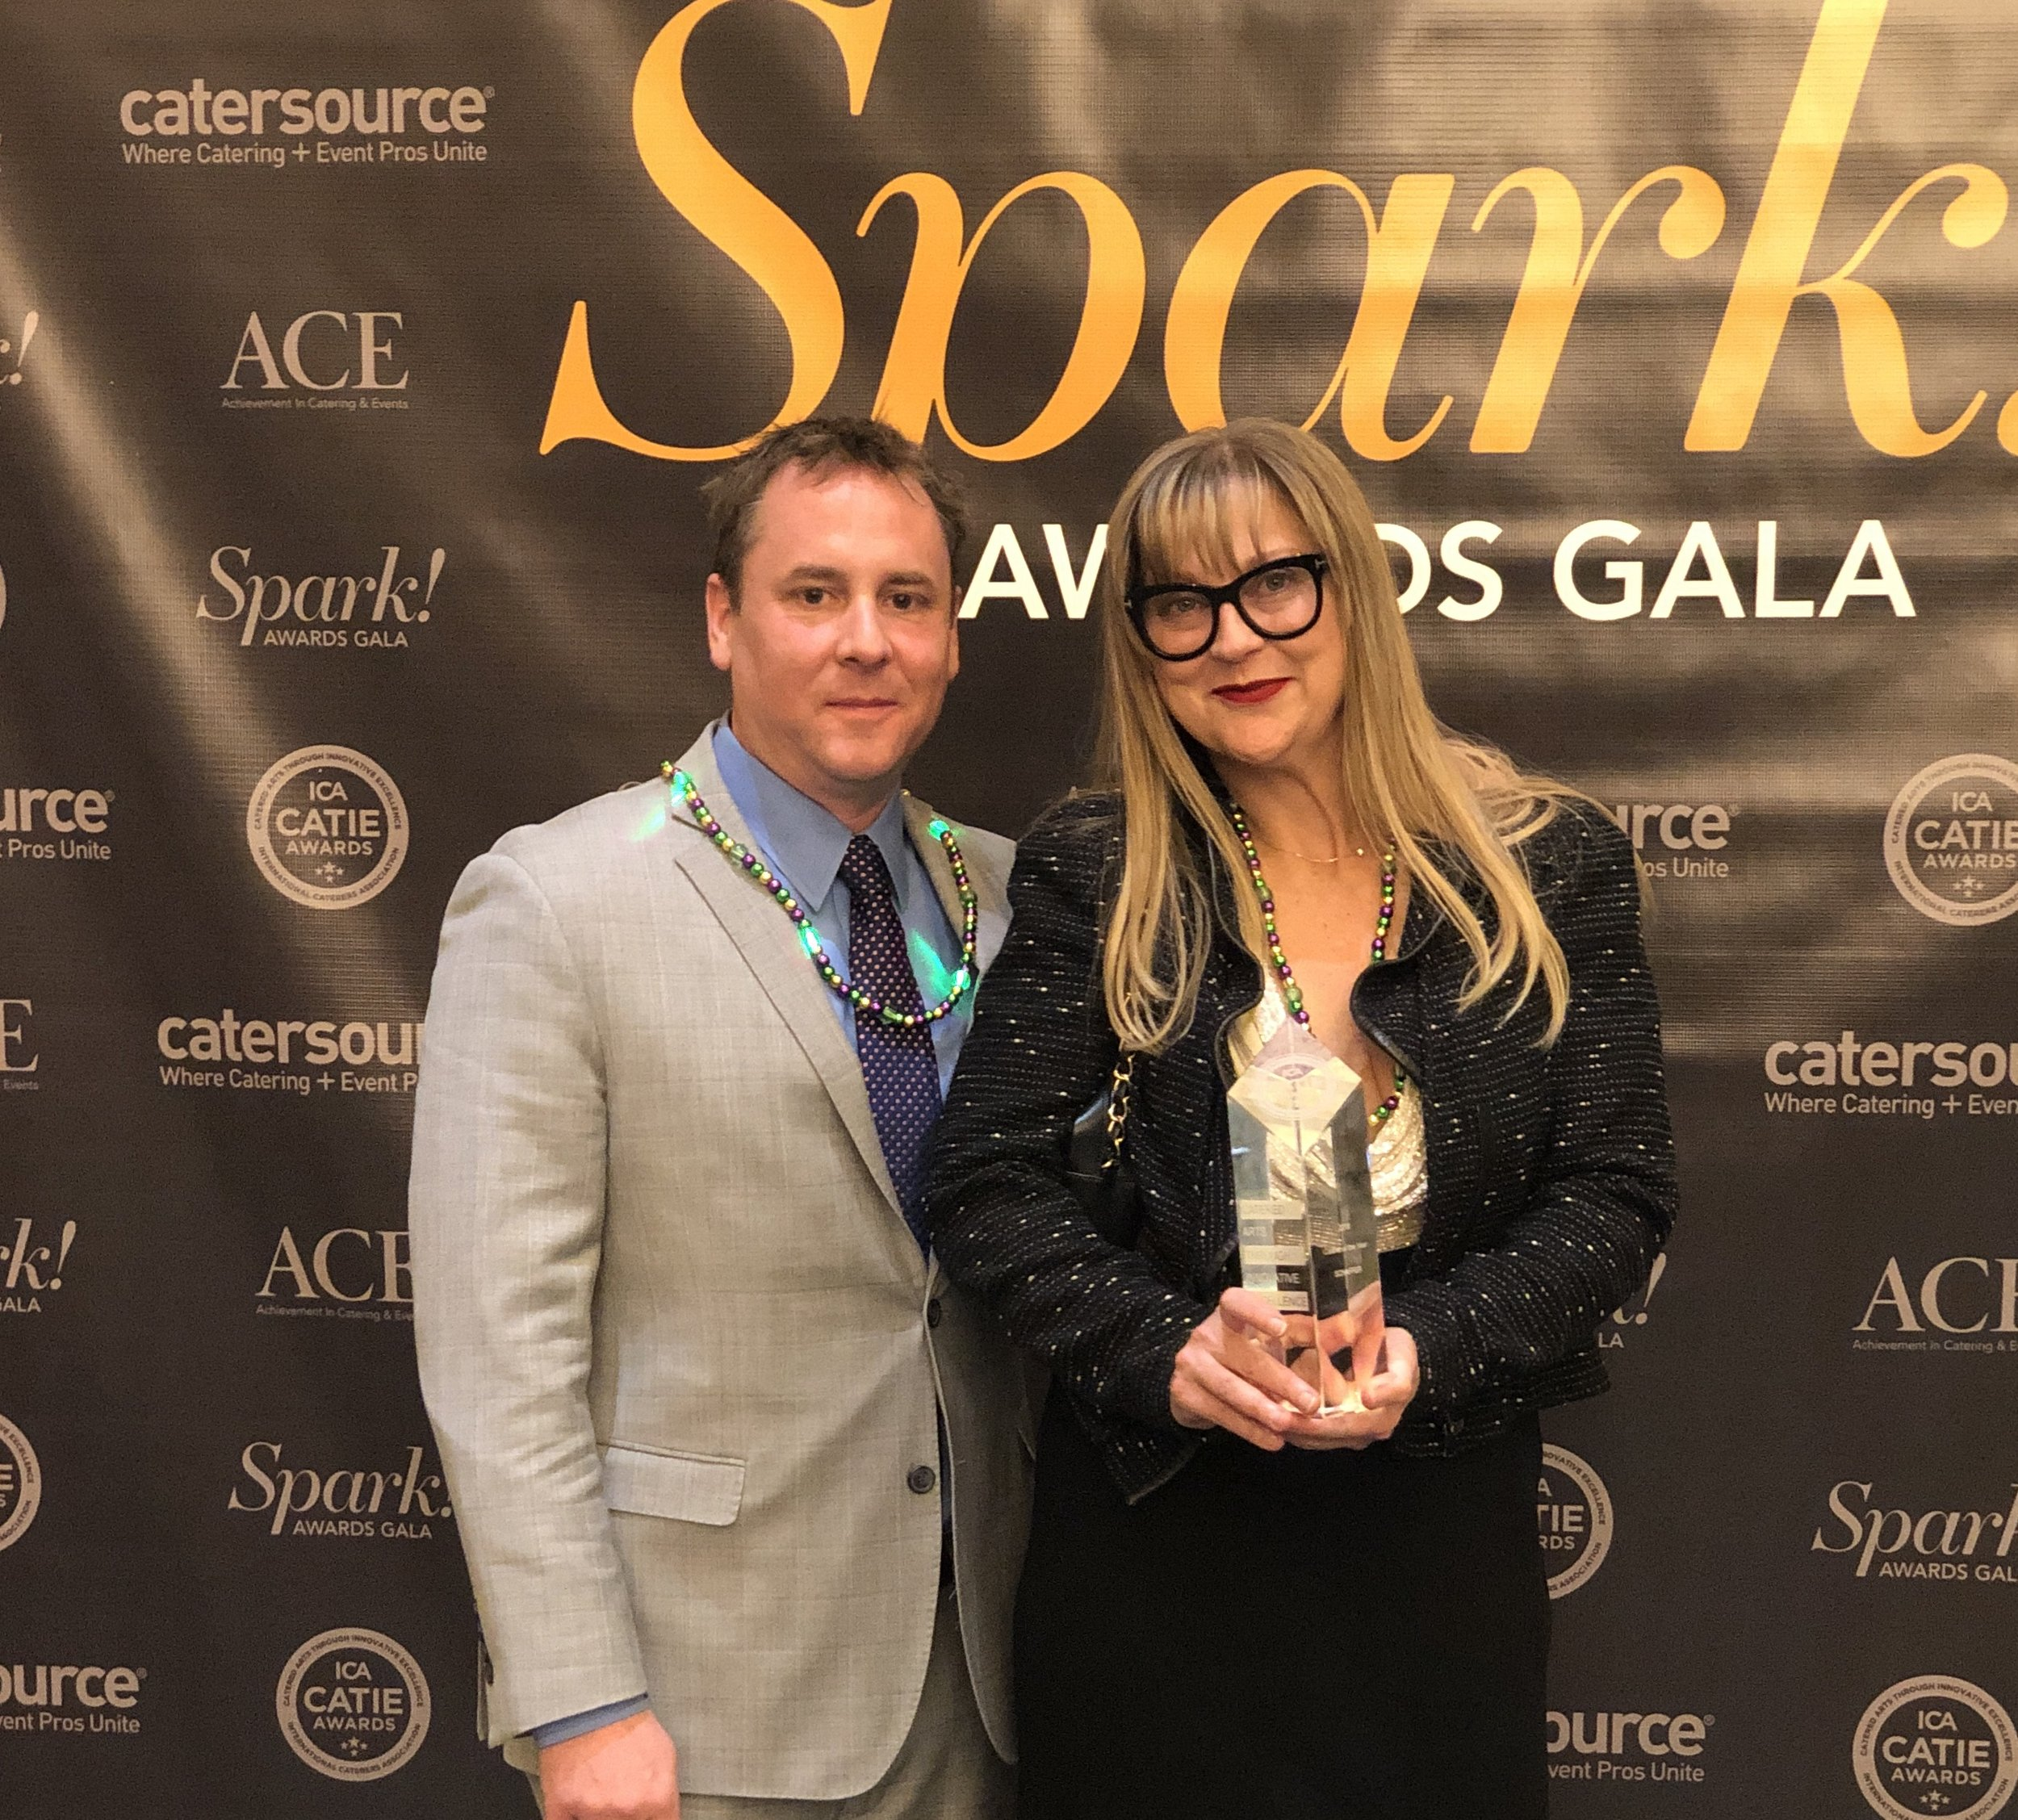 2019 Caterer of the Year! Proud owners, Kathleen & Charlie Schaffer take home the big prize of the night in New Orleans, Mardi Gras beads and all!